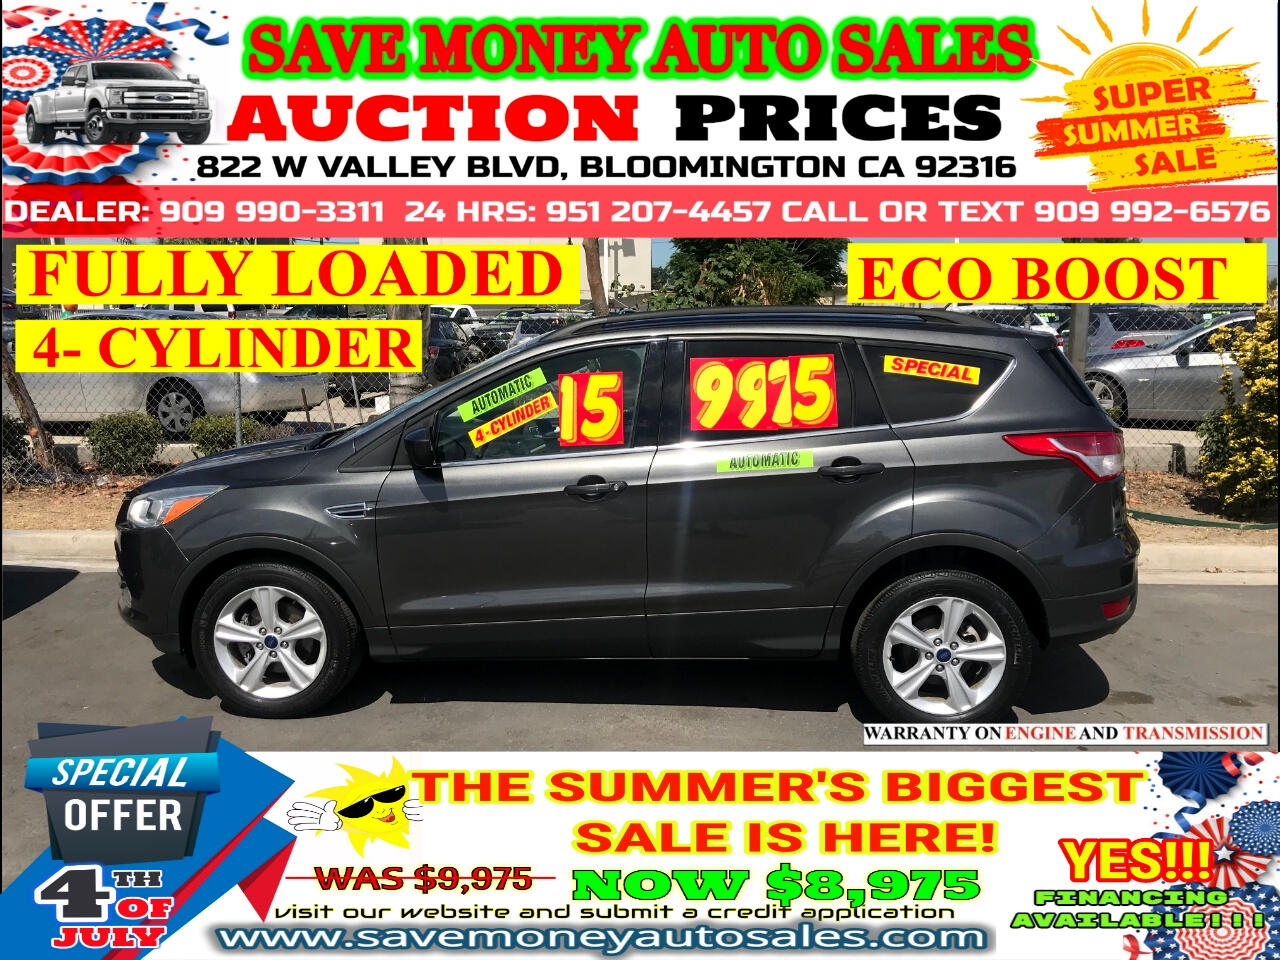 2015 Ford Escape SE FWD> 4 CYLINDER> ECO BOOST> FULLY LOADED